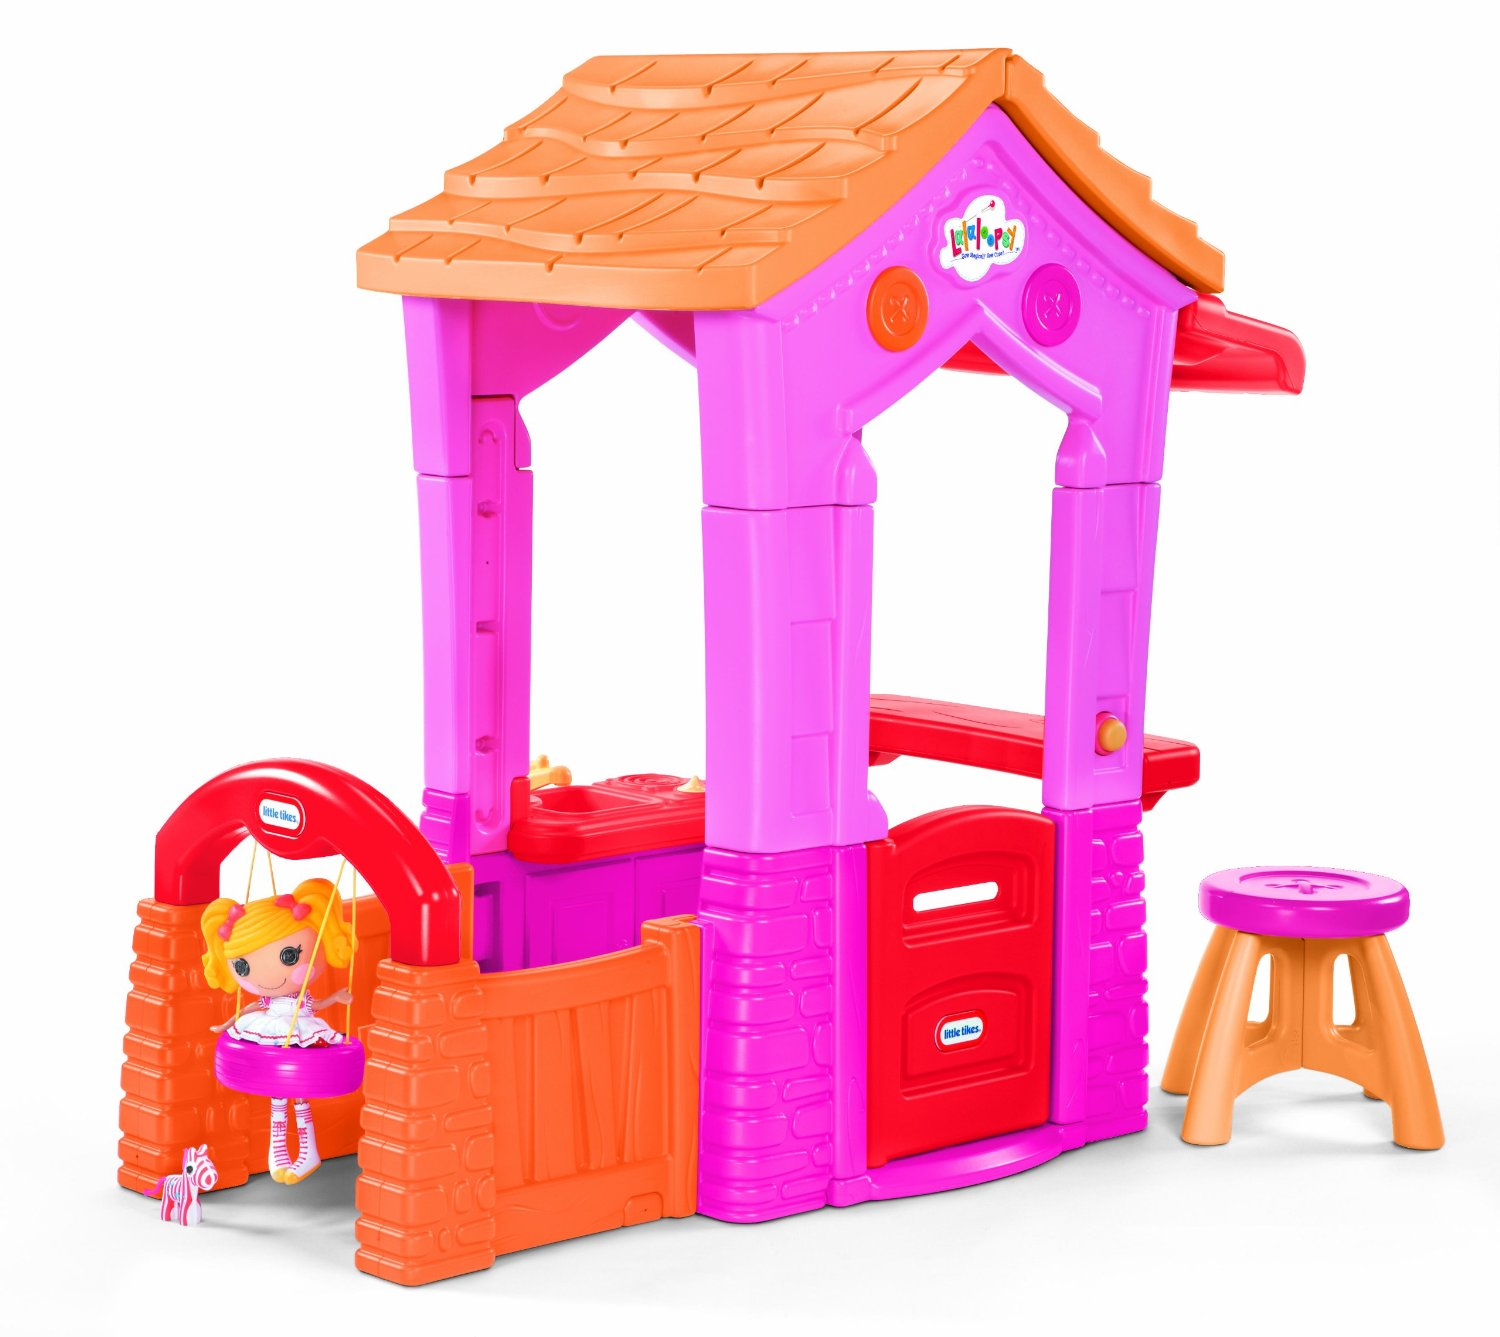 cute little tikes playhouse made of plastic with orange roof and pink siding for playground decor ideas